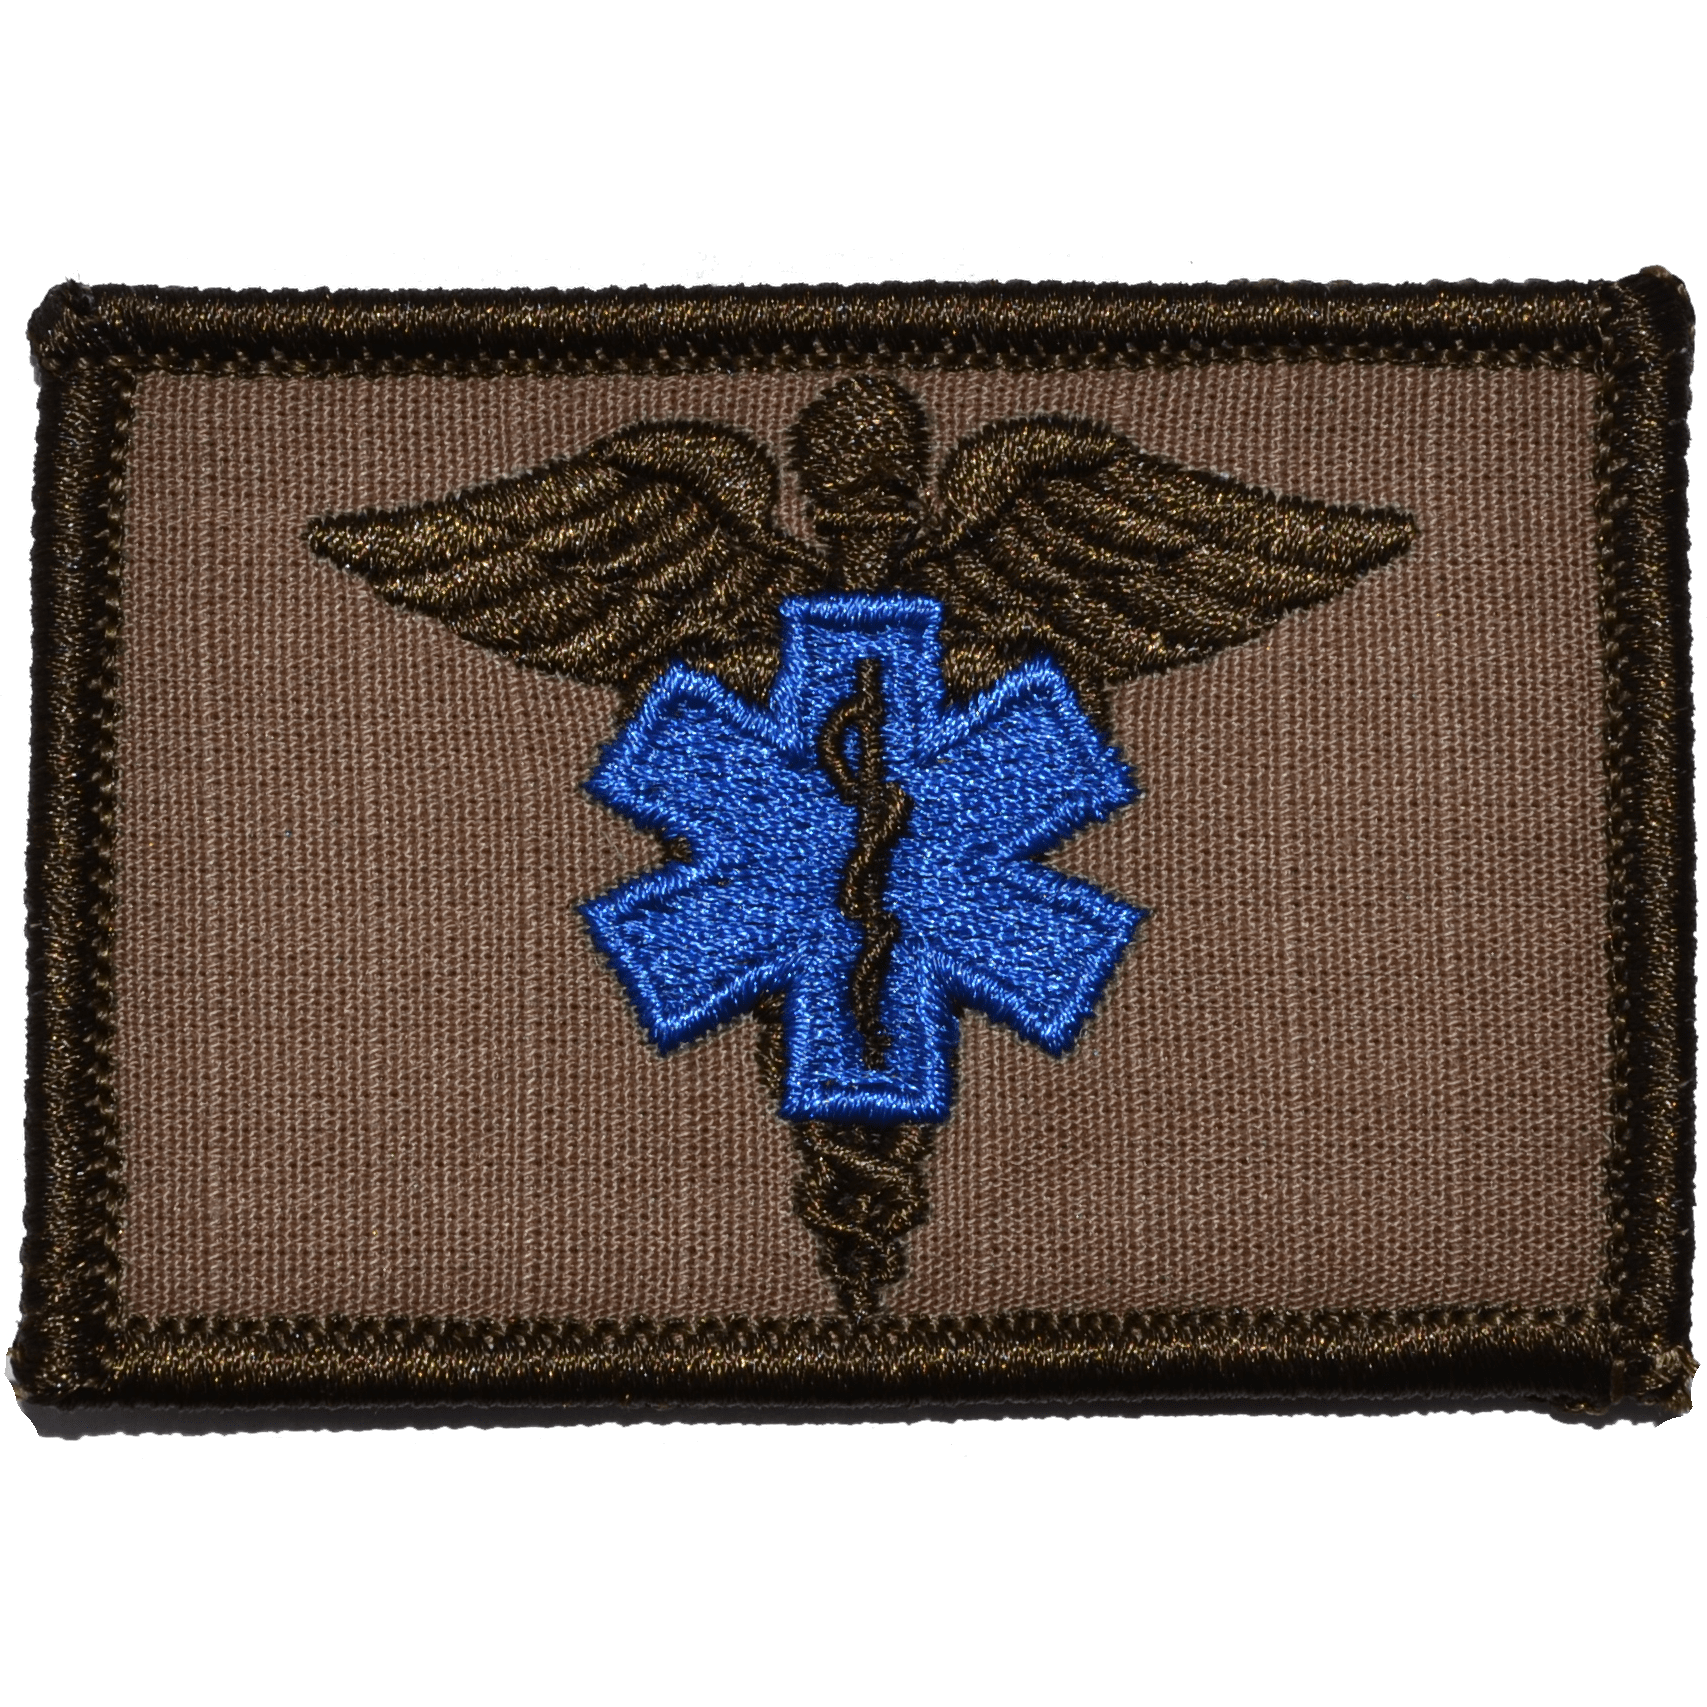 Tactical Gear Junkie Patches Coyote Brown Caduceus Star of Life EMT - 2x3 Patch